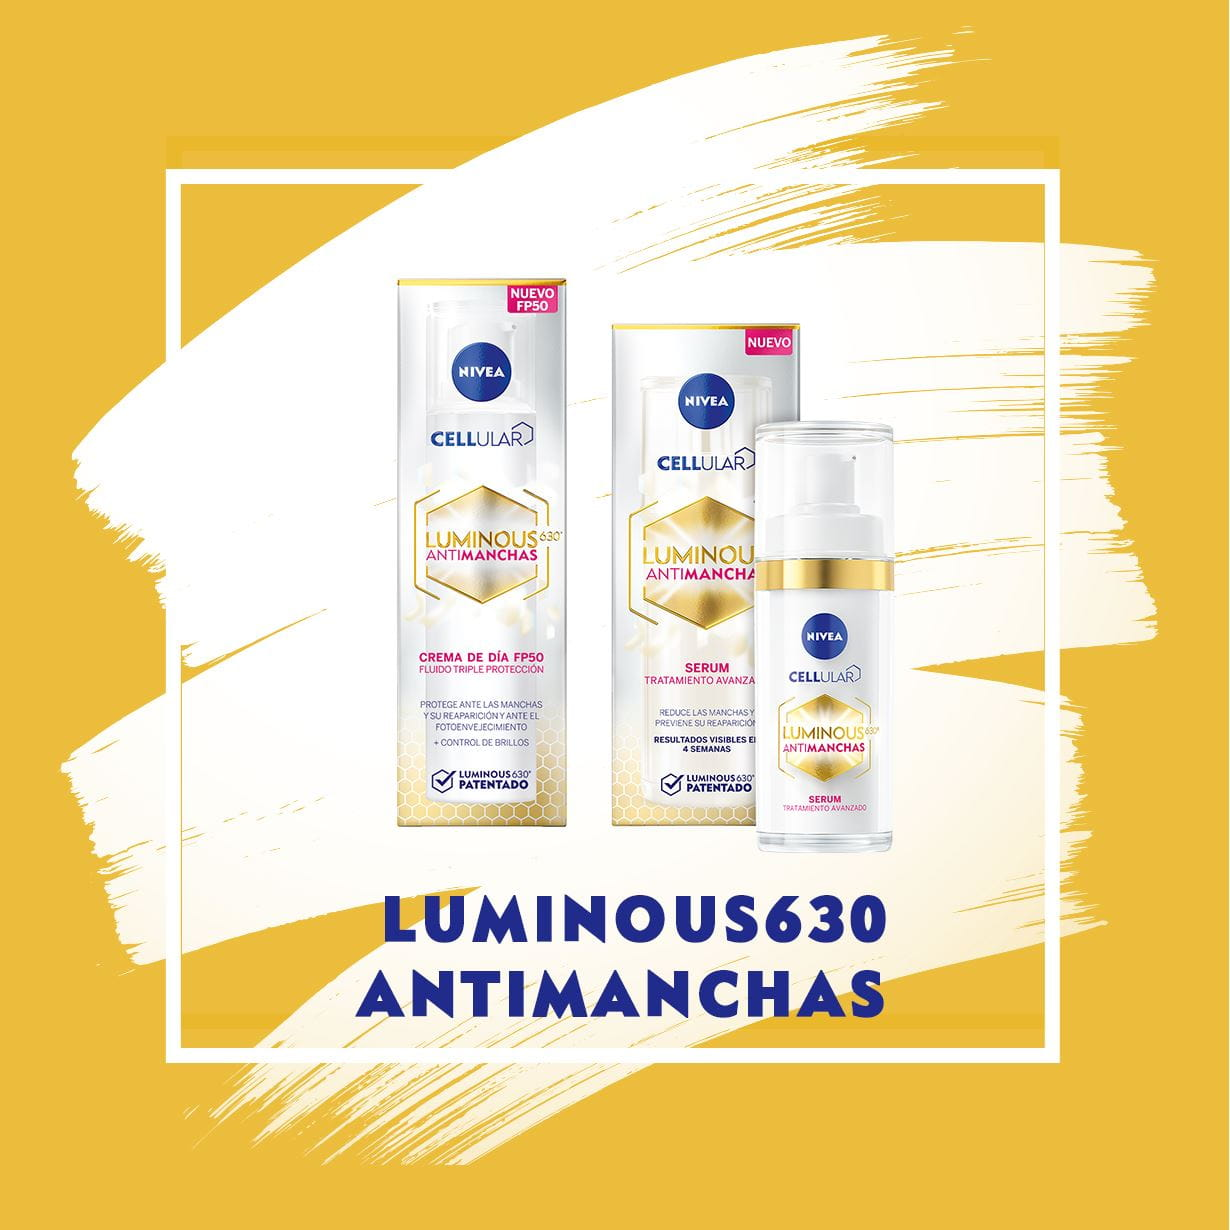 Tester NIVEA LUMINOUS 630 ANTIMANCHAS